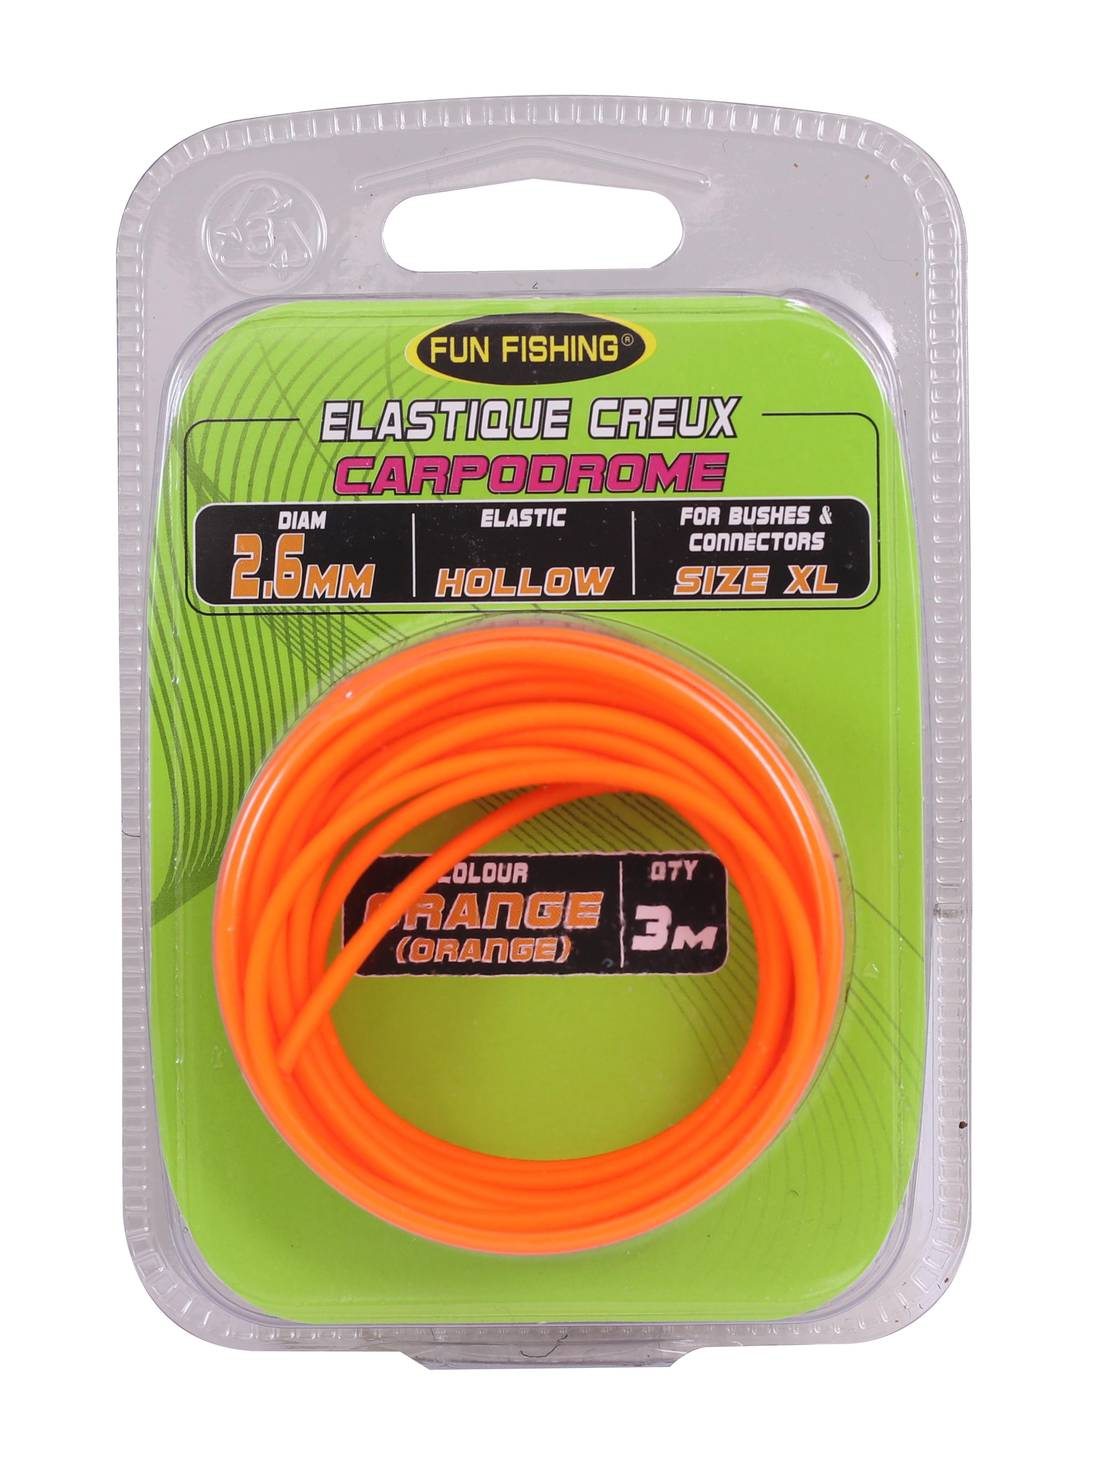 Elastique Creux Fun Fishing 2.6mm Orange